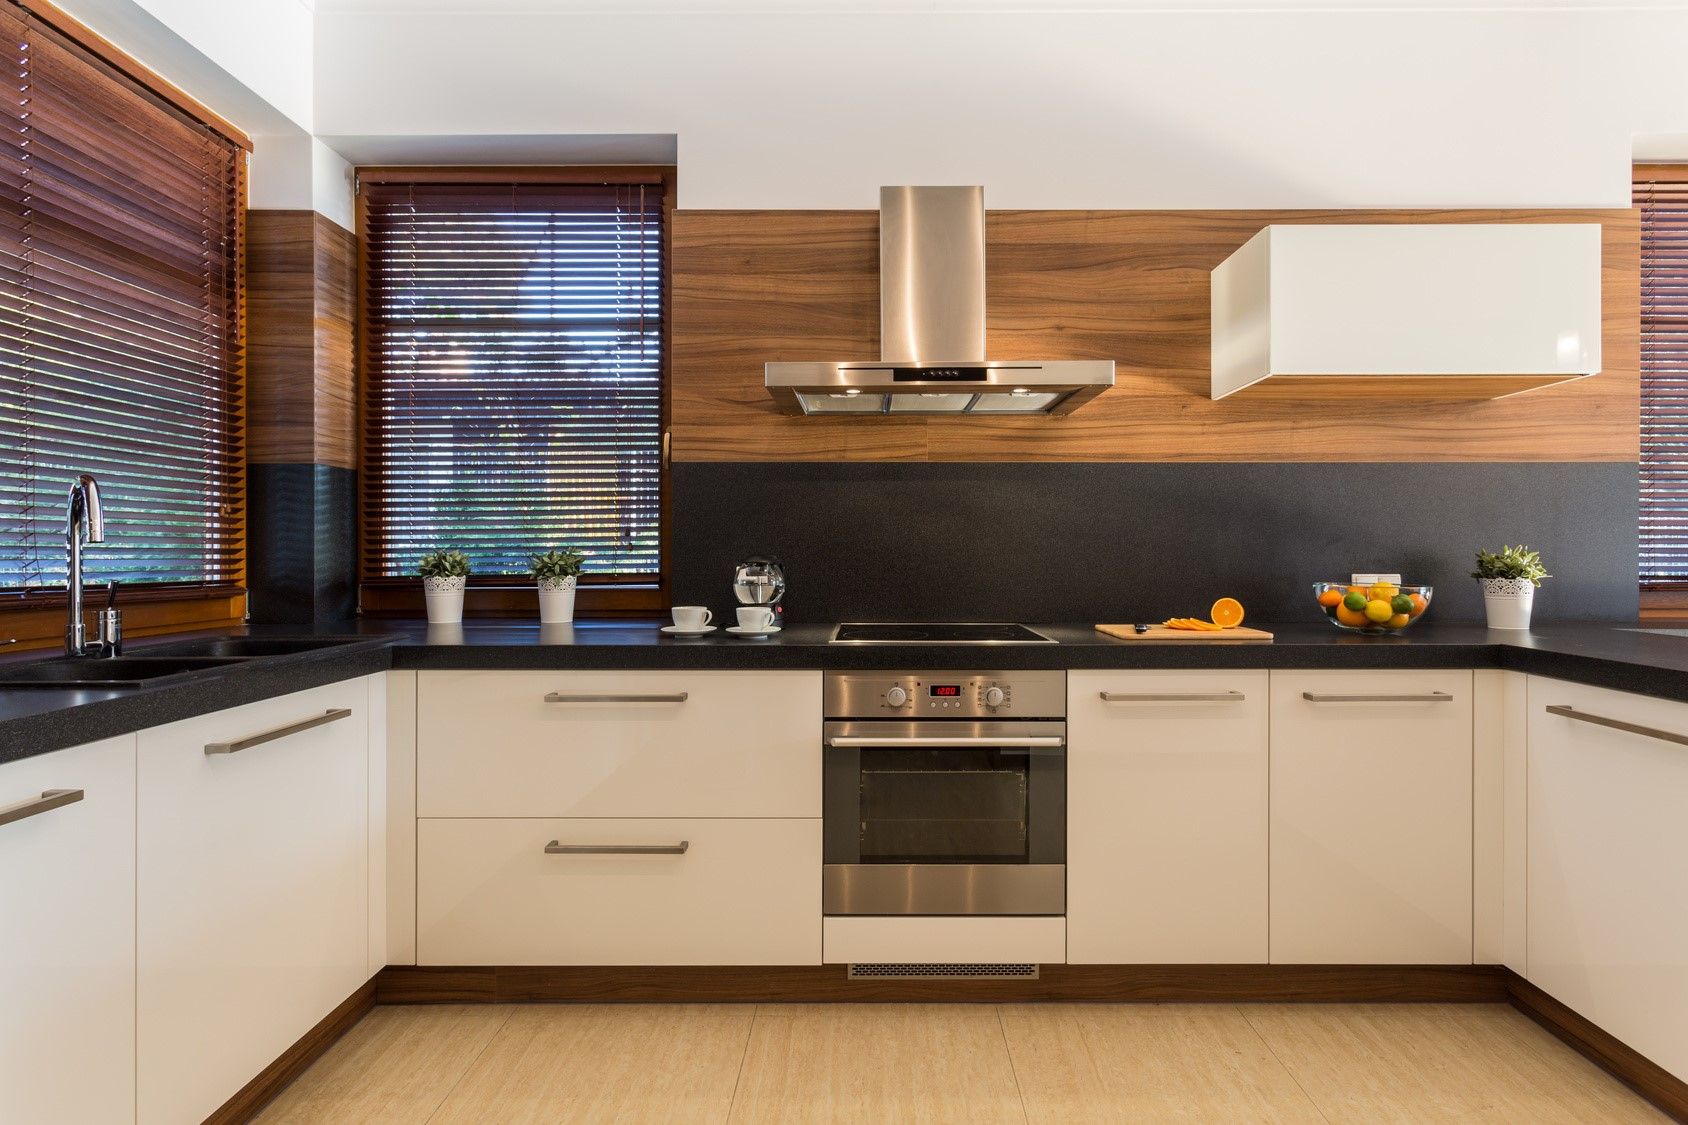 Modular Kitchen Interior DesignWud